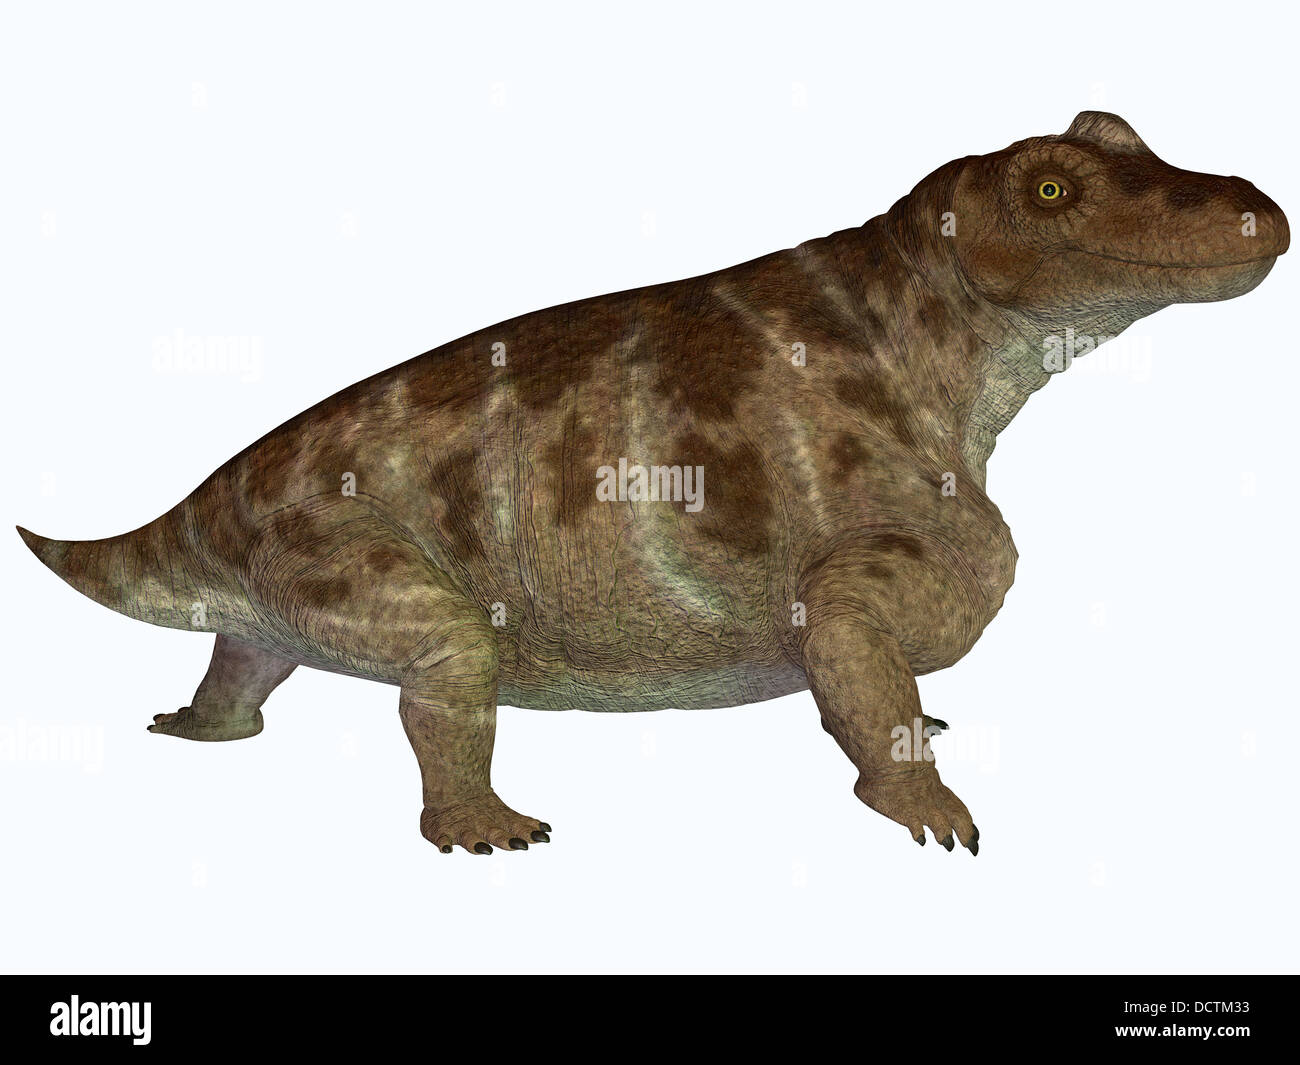 Keratocephalus was a semi-aquatic herbivore dinosaur that lived in the Permian Age of Africa. Stock Photo